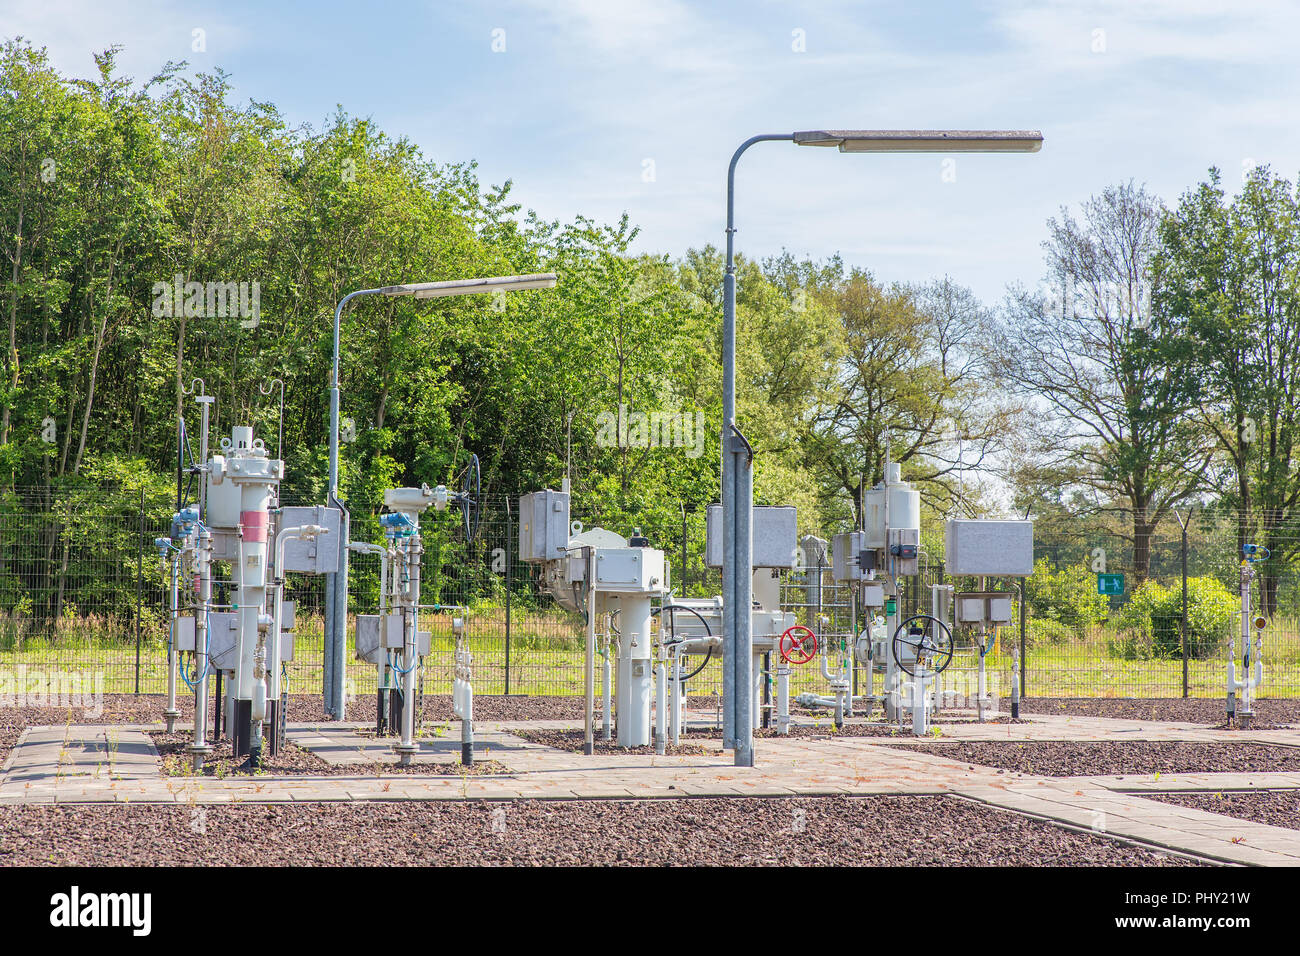 Dutch gas installation with gas pipes outdoors - Stock Image